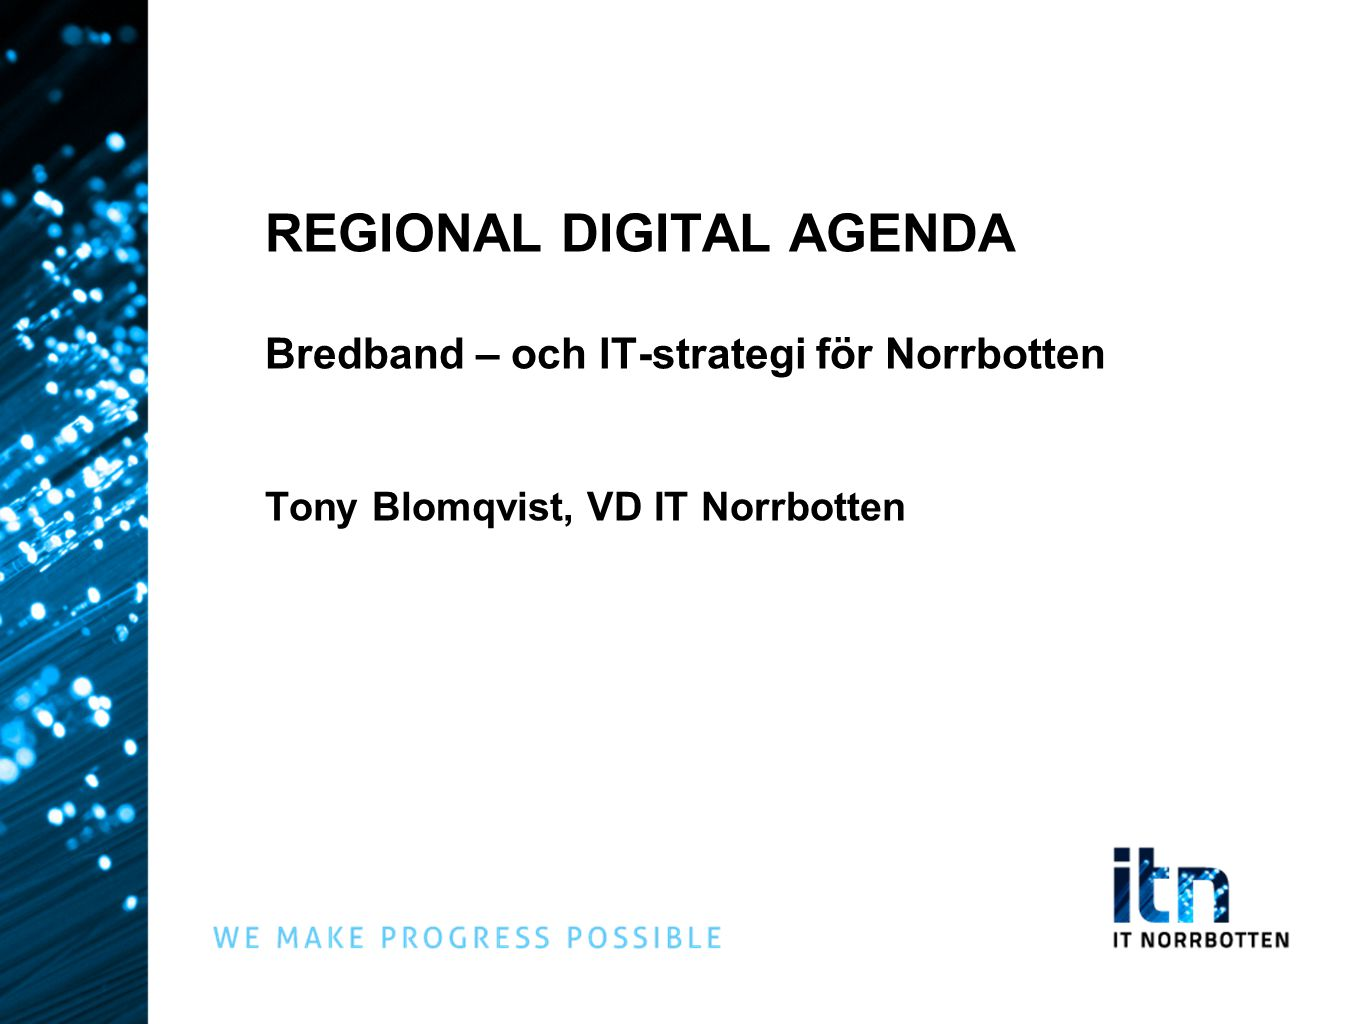 REGIONAL DIGITAL AGENDA Bredband – och IT-strategi för Norrbotten Tony Blomqvist, VD IT Norrbotten